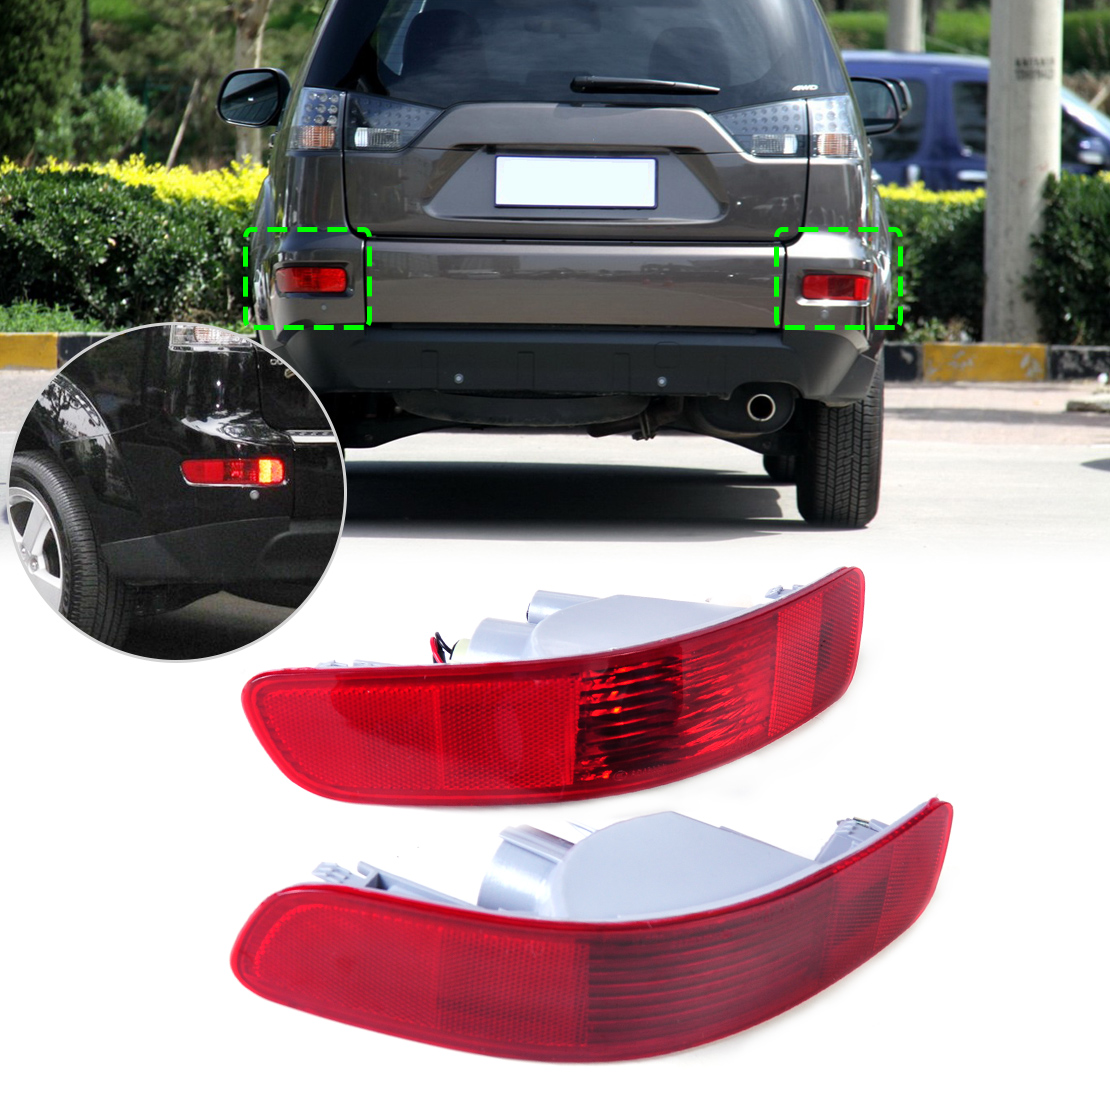 beler 2x Rear Right Left Tail Fog Light Lamp Reflector 8352A005 8337A015 for Mitsubishi Outlander 2007 2008 2009 2010 2011 2012 citall rear spare tire cover tail bumper light fog lamp for mitsubishi pajero shogun 2007 2009 2010 2011 2012 2013 2014 2015